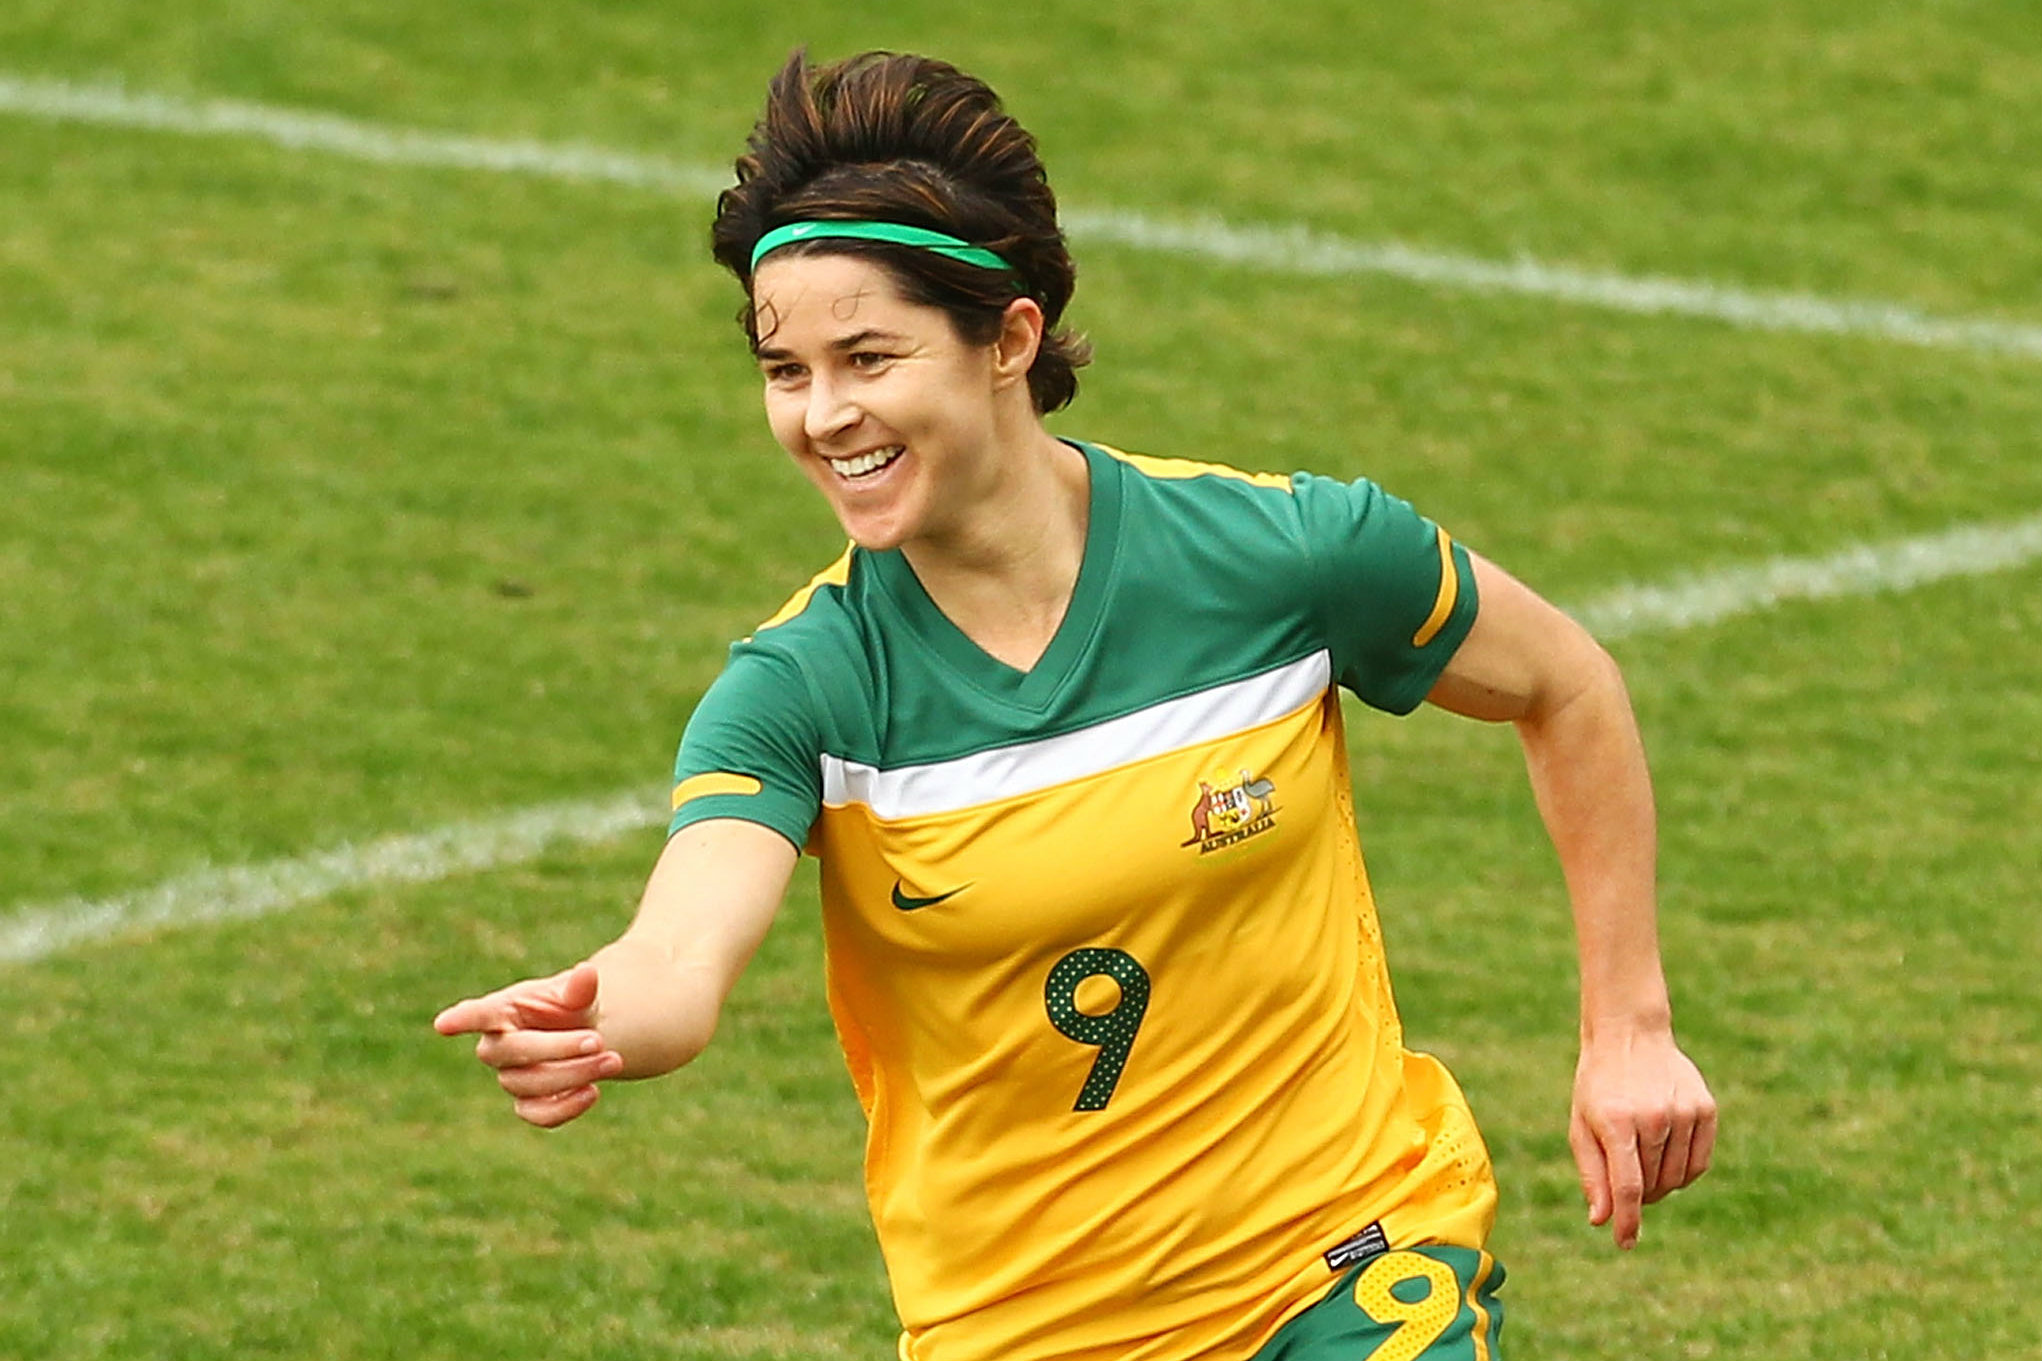 Sarah Walsh celebrating one of her many goals for the Westfield Matildas.